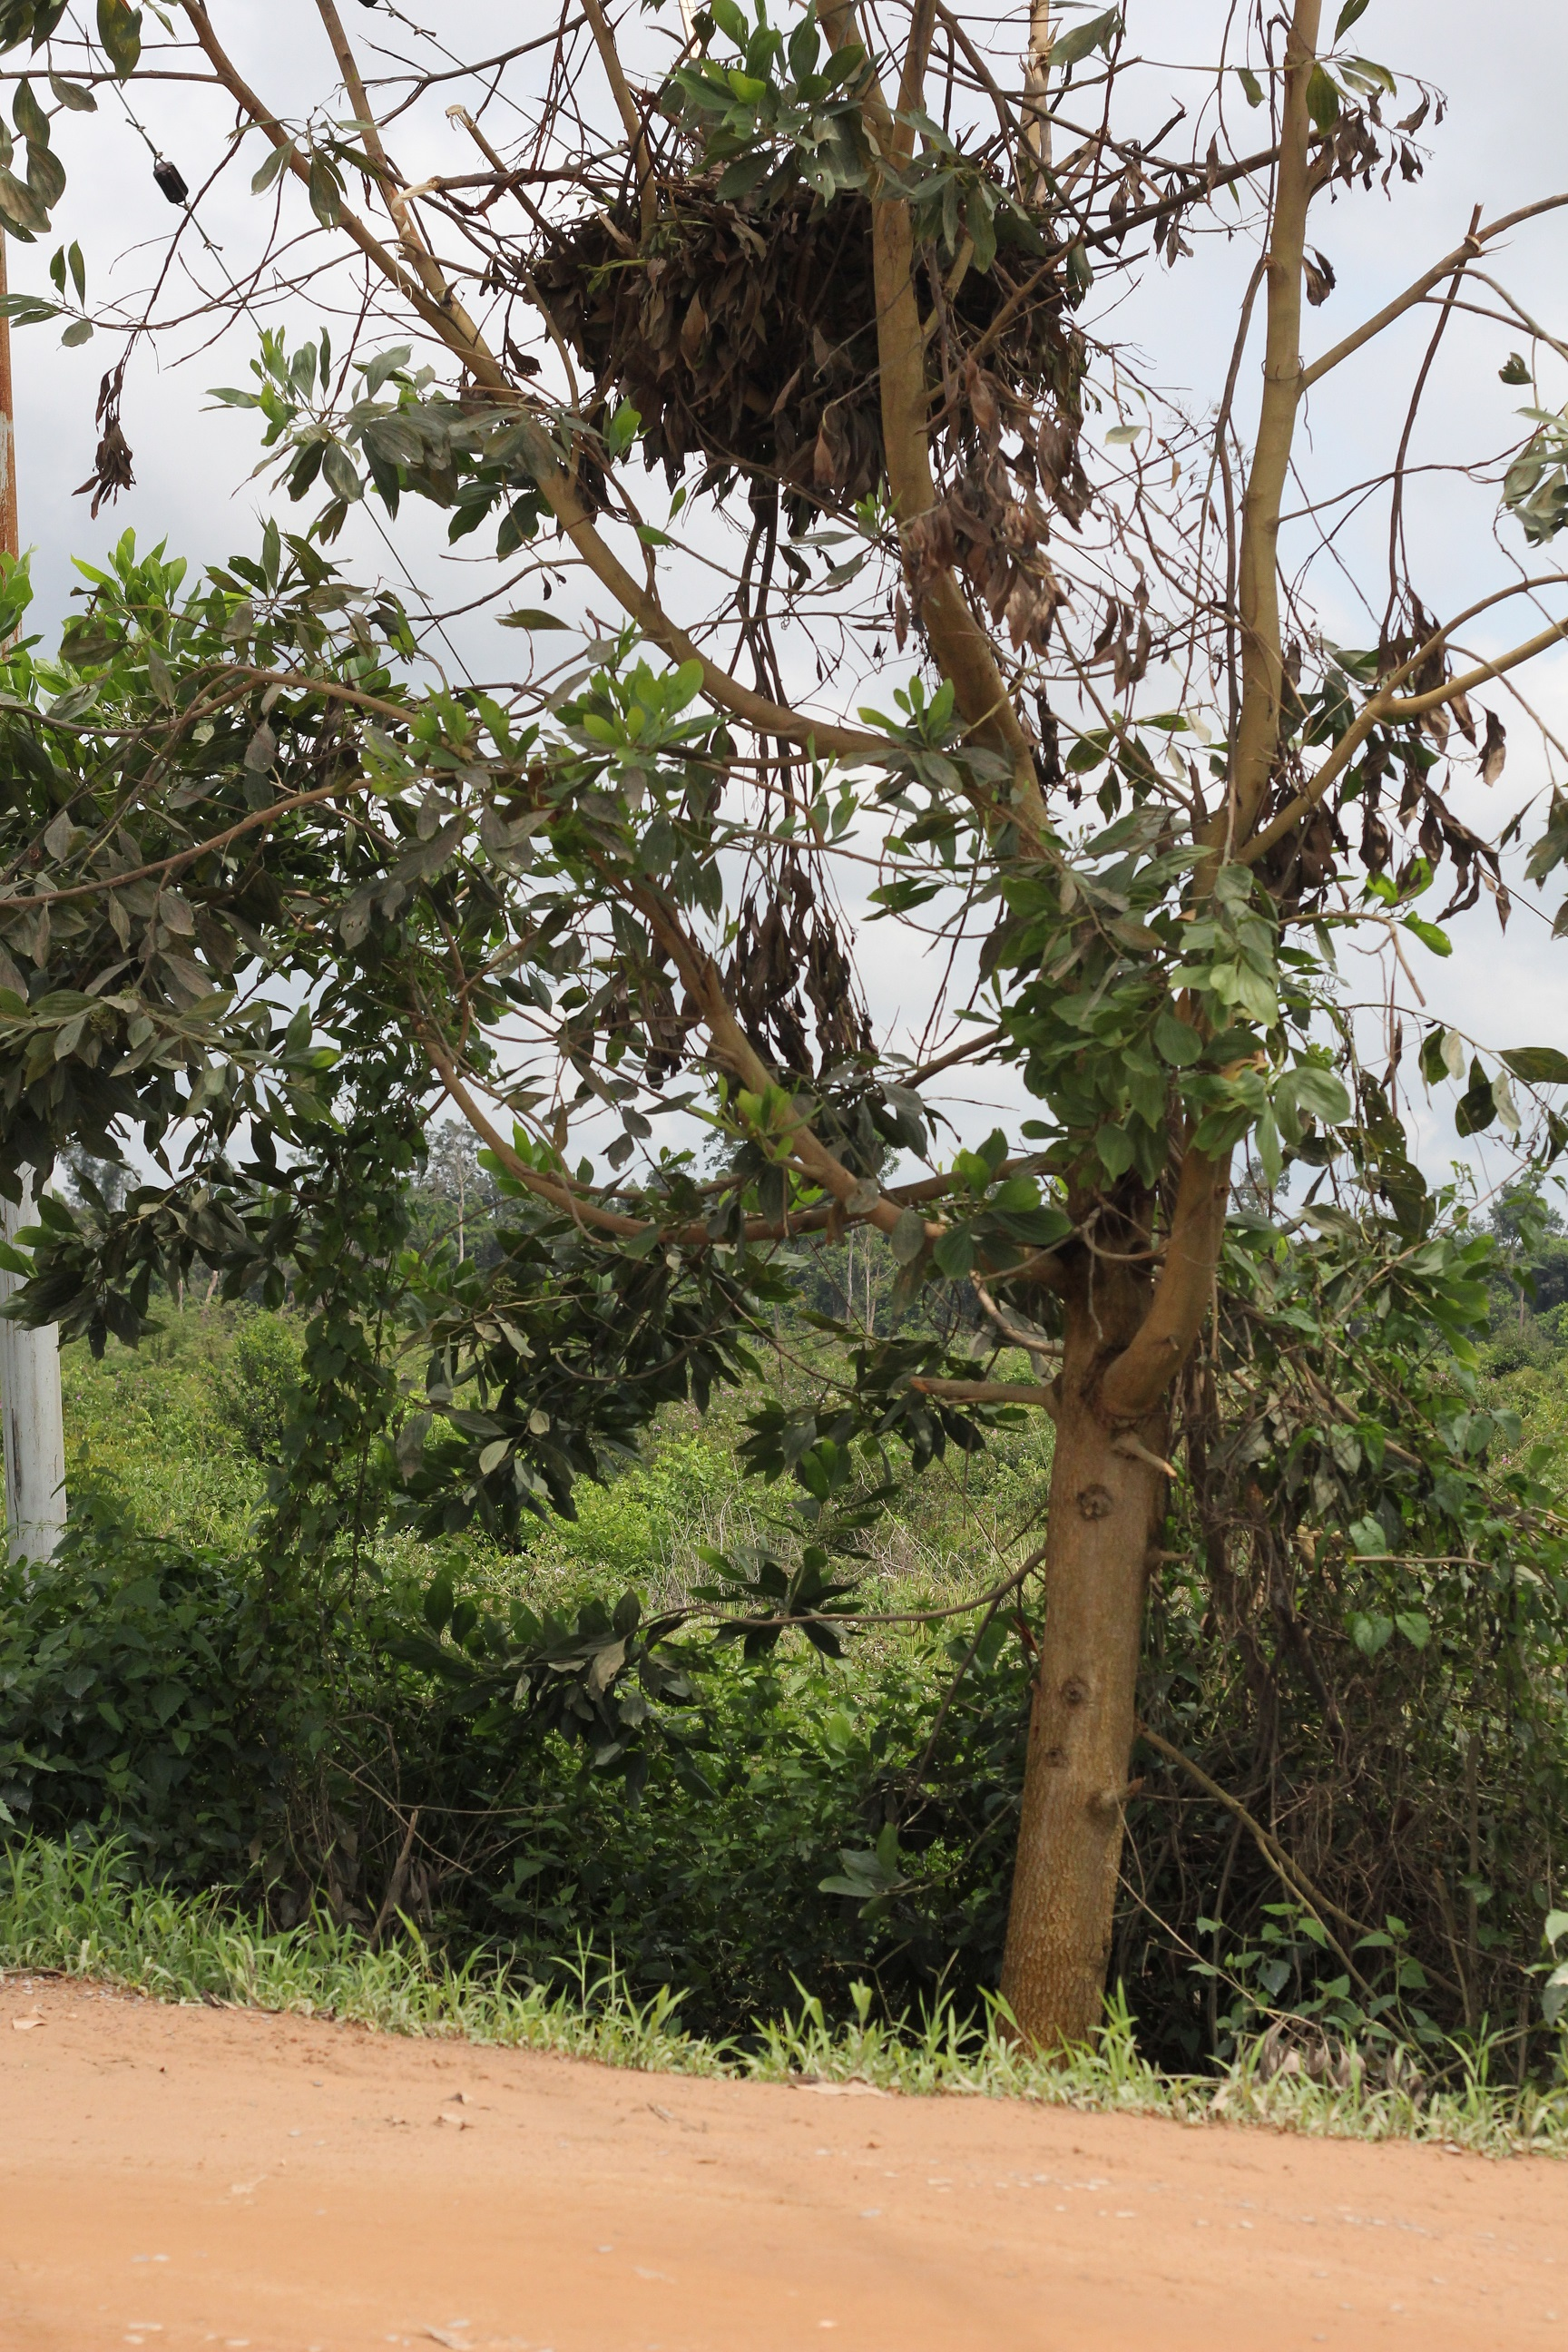 Kolam's nest can be seen in the tree, with the road in the foreground.